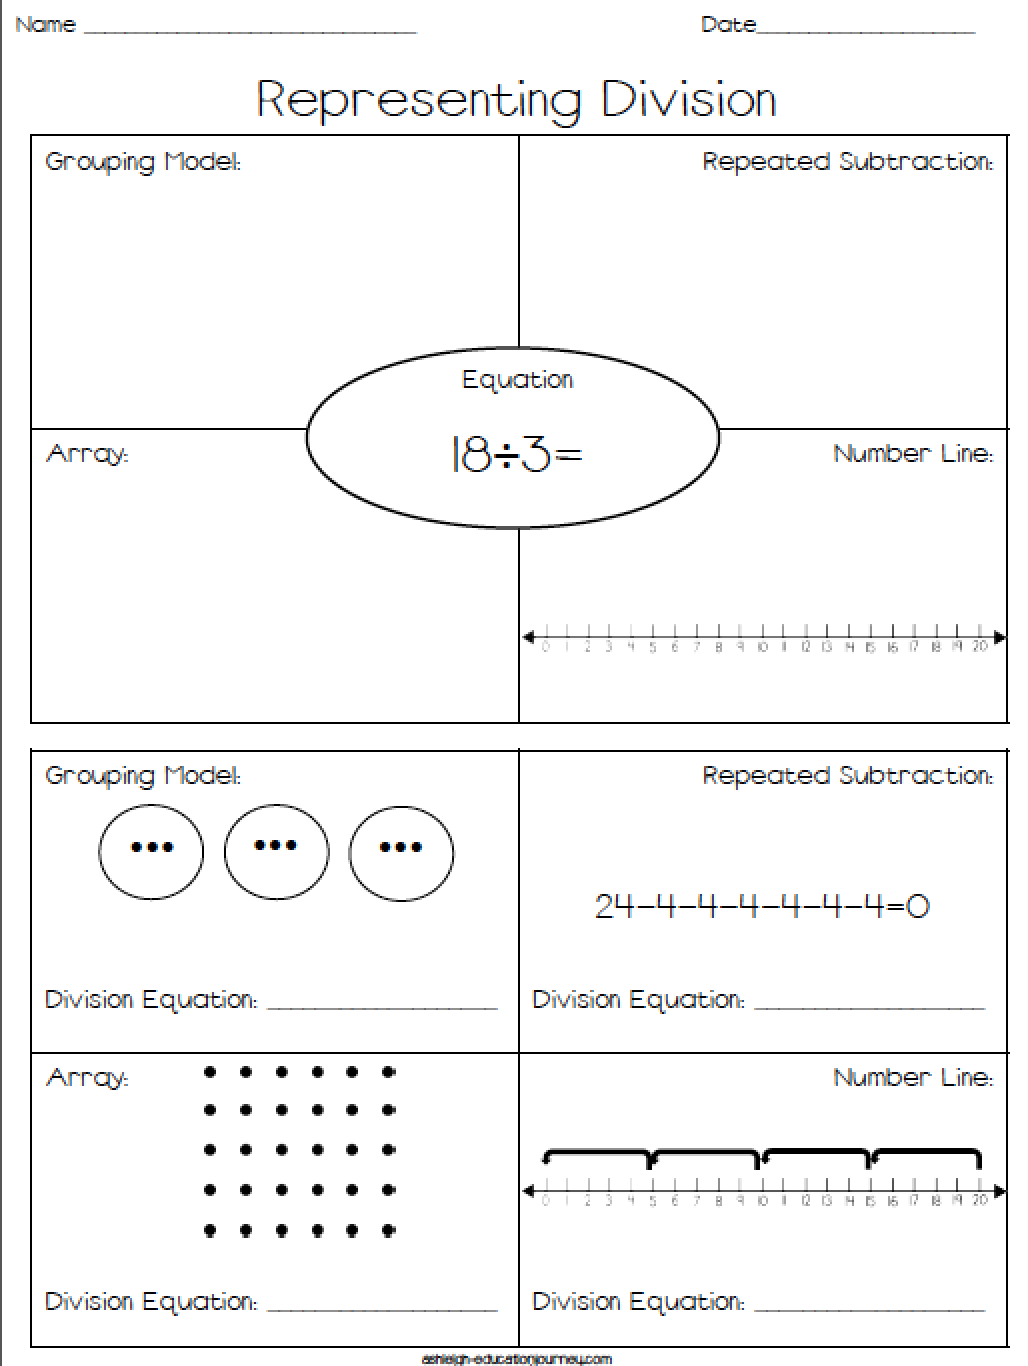 worksheet Math Models Worksheets representing division free worksheet where students represent using repeated subtraction grouping model